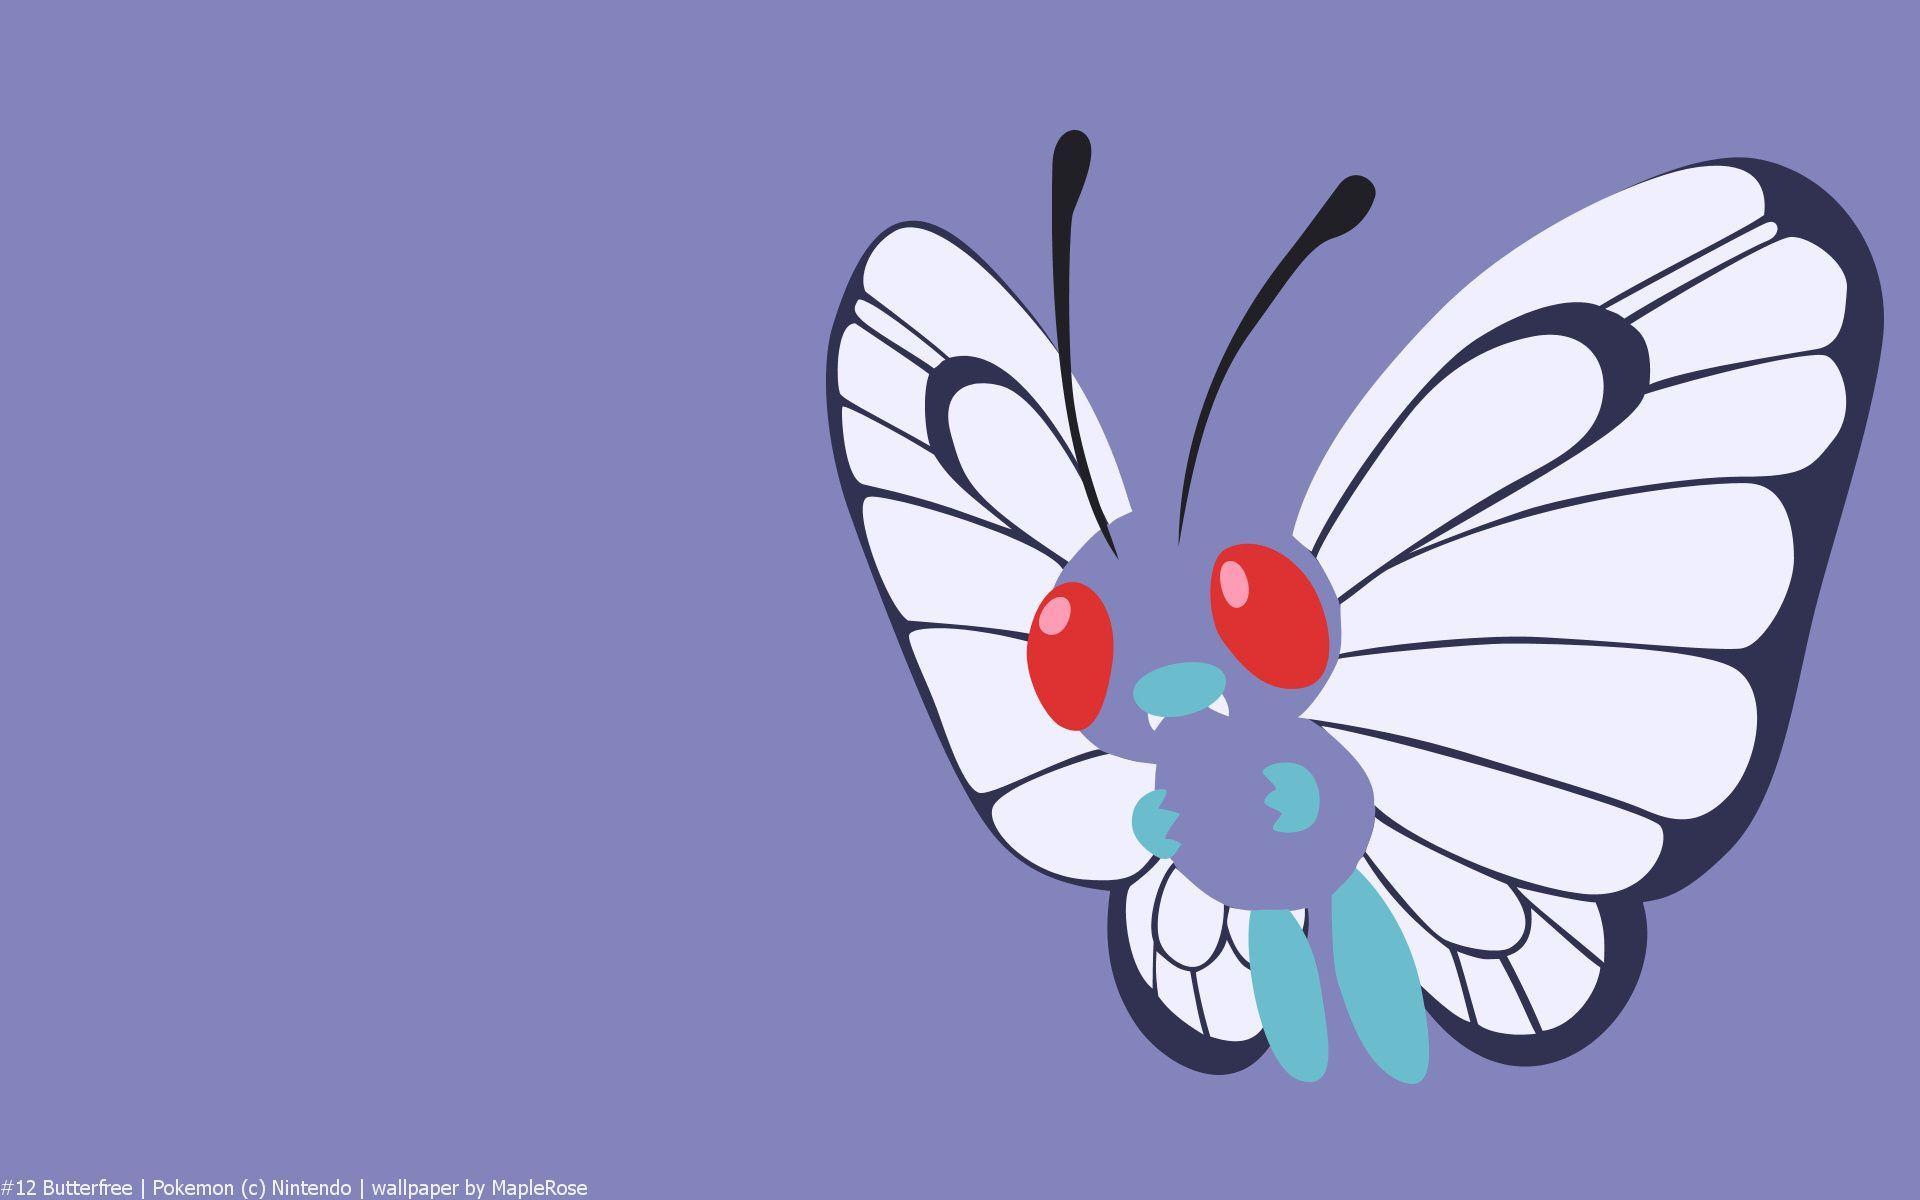 Butterfree Pokemon HD Wallpaper - Free HD wallpapers, Iphone ...